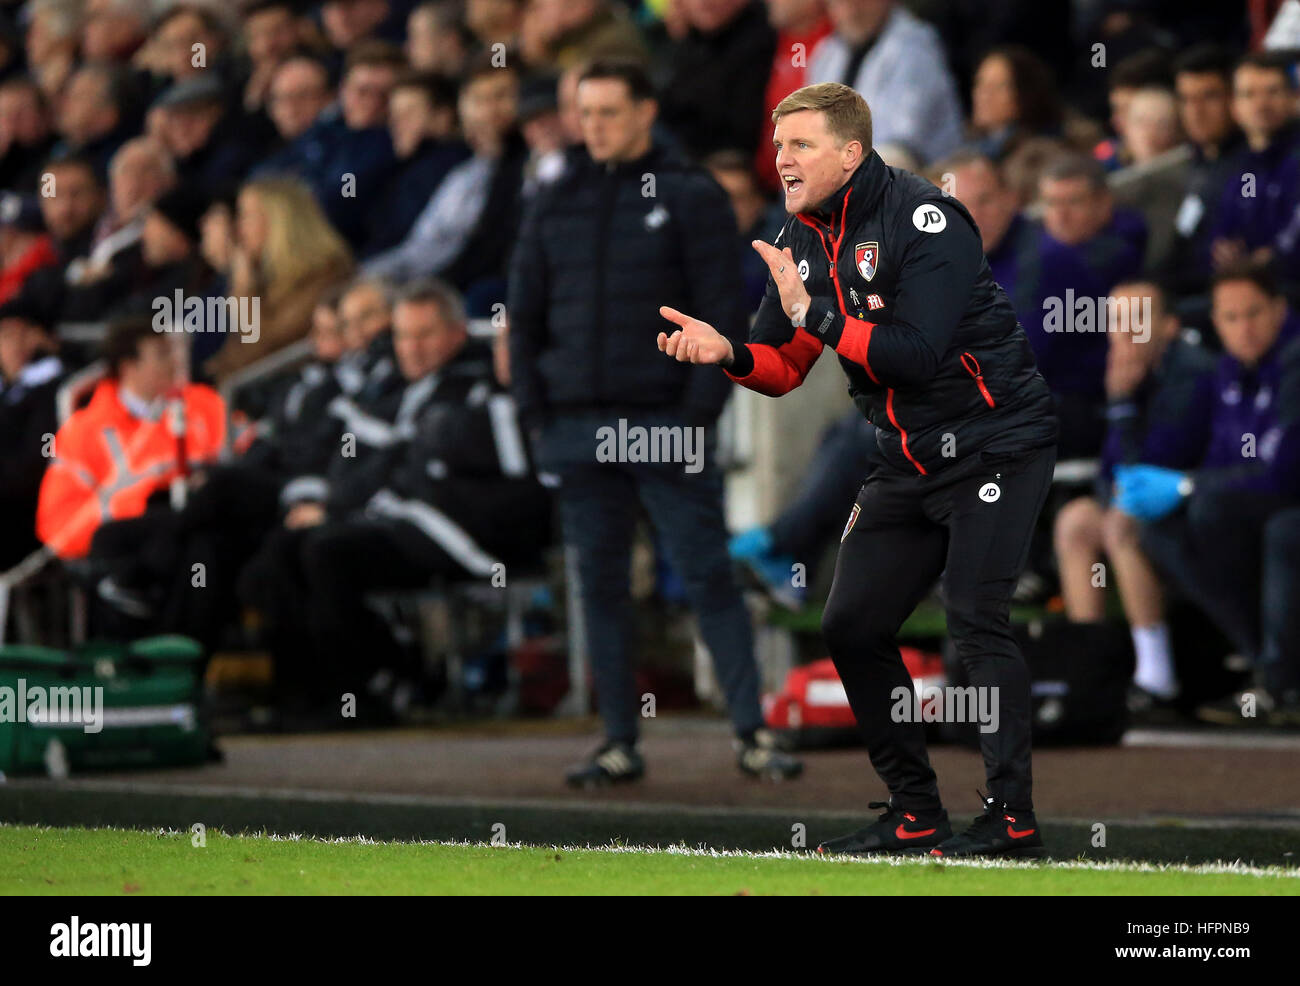 Afc Bournemouth Manager Eddie Howe Stock Photos Afc Bournemouth Manager Eddie Howe Stock Images Page 3 Alamy